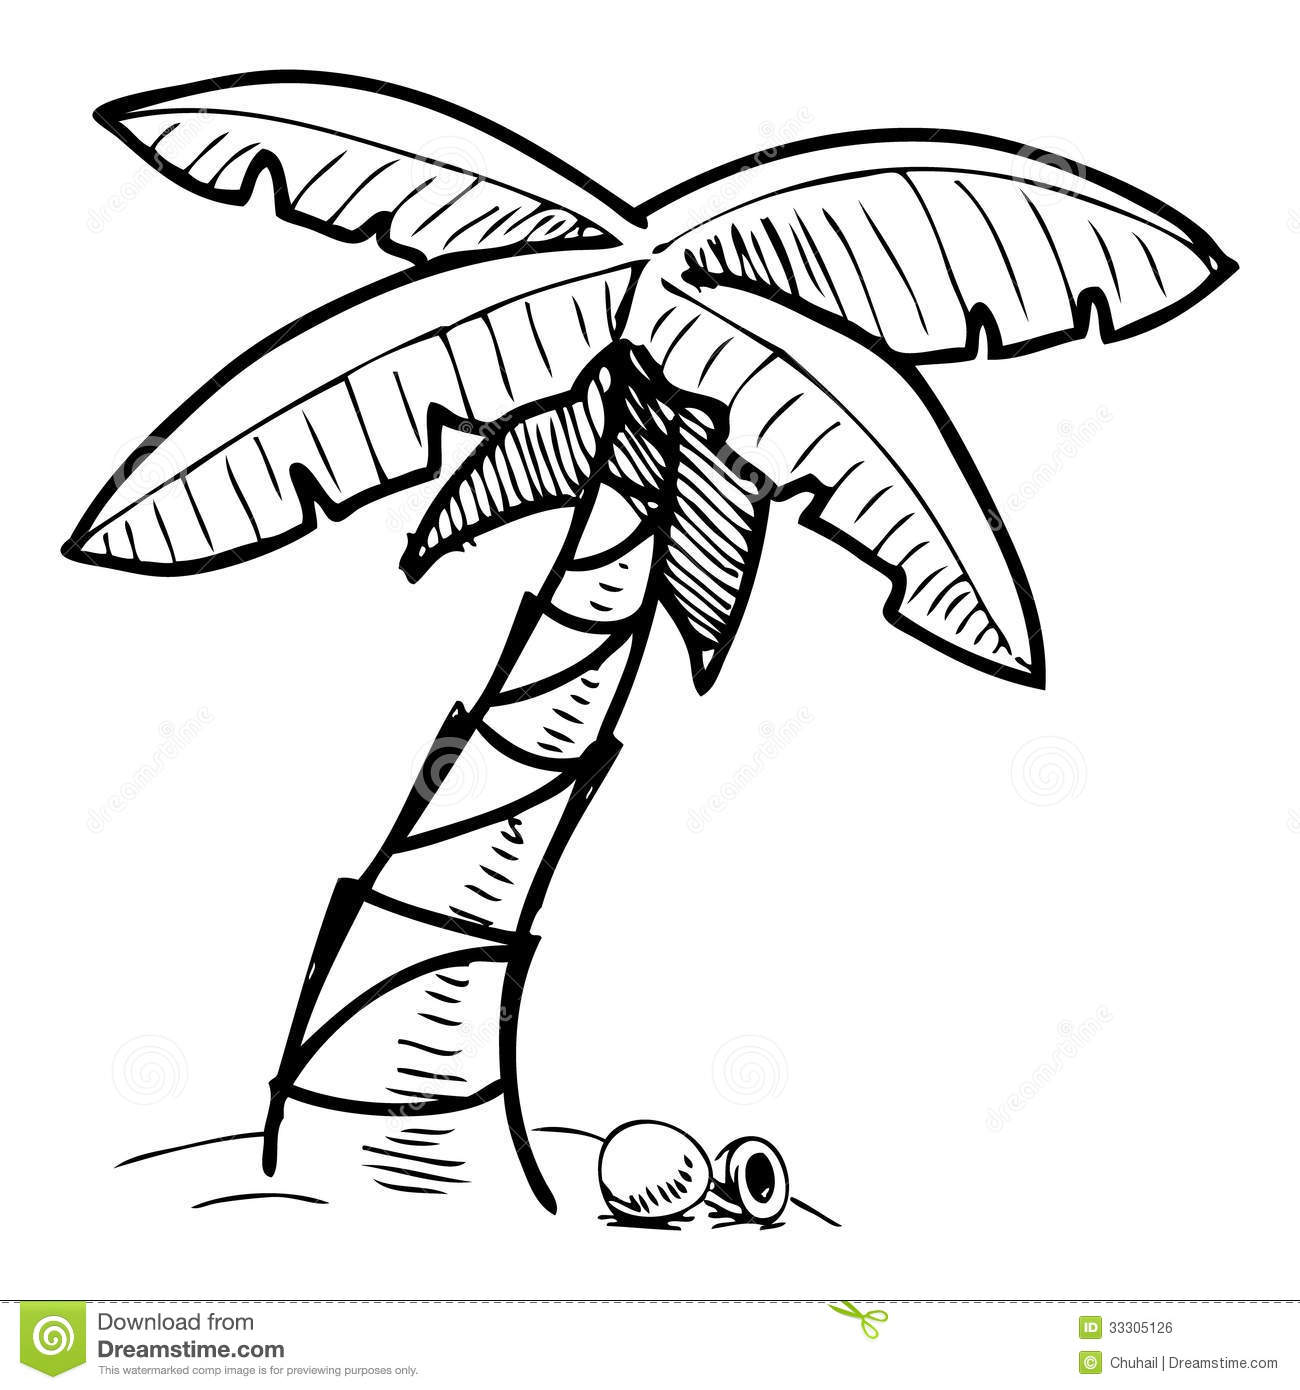 Tropical Palm Tree Sketch Illustration Royalty Free Stock